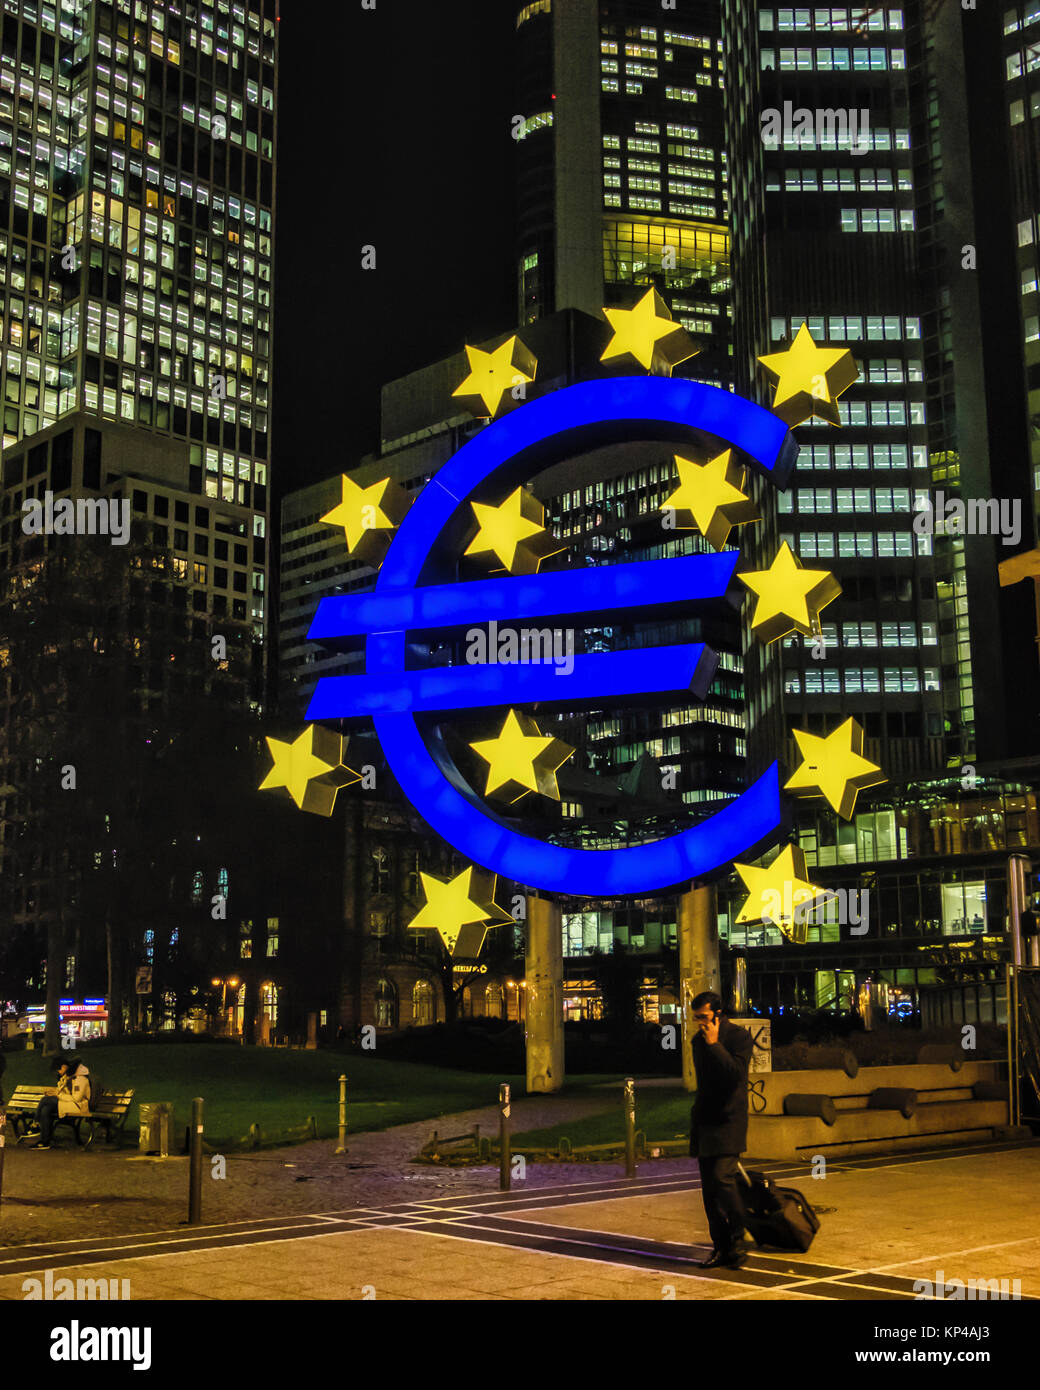 Frankfurtgermanyilluminated Euro Symbol In Front Of The Euro Tower